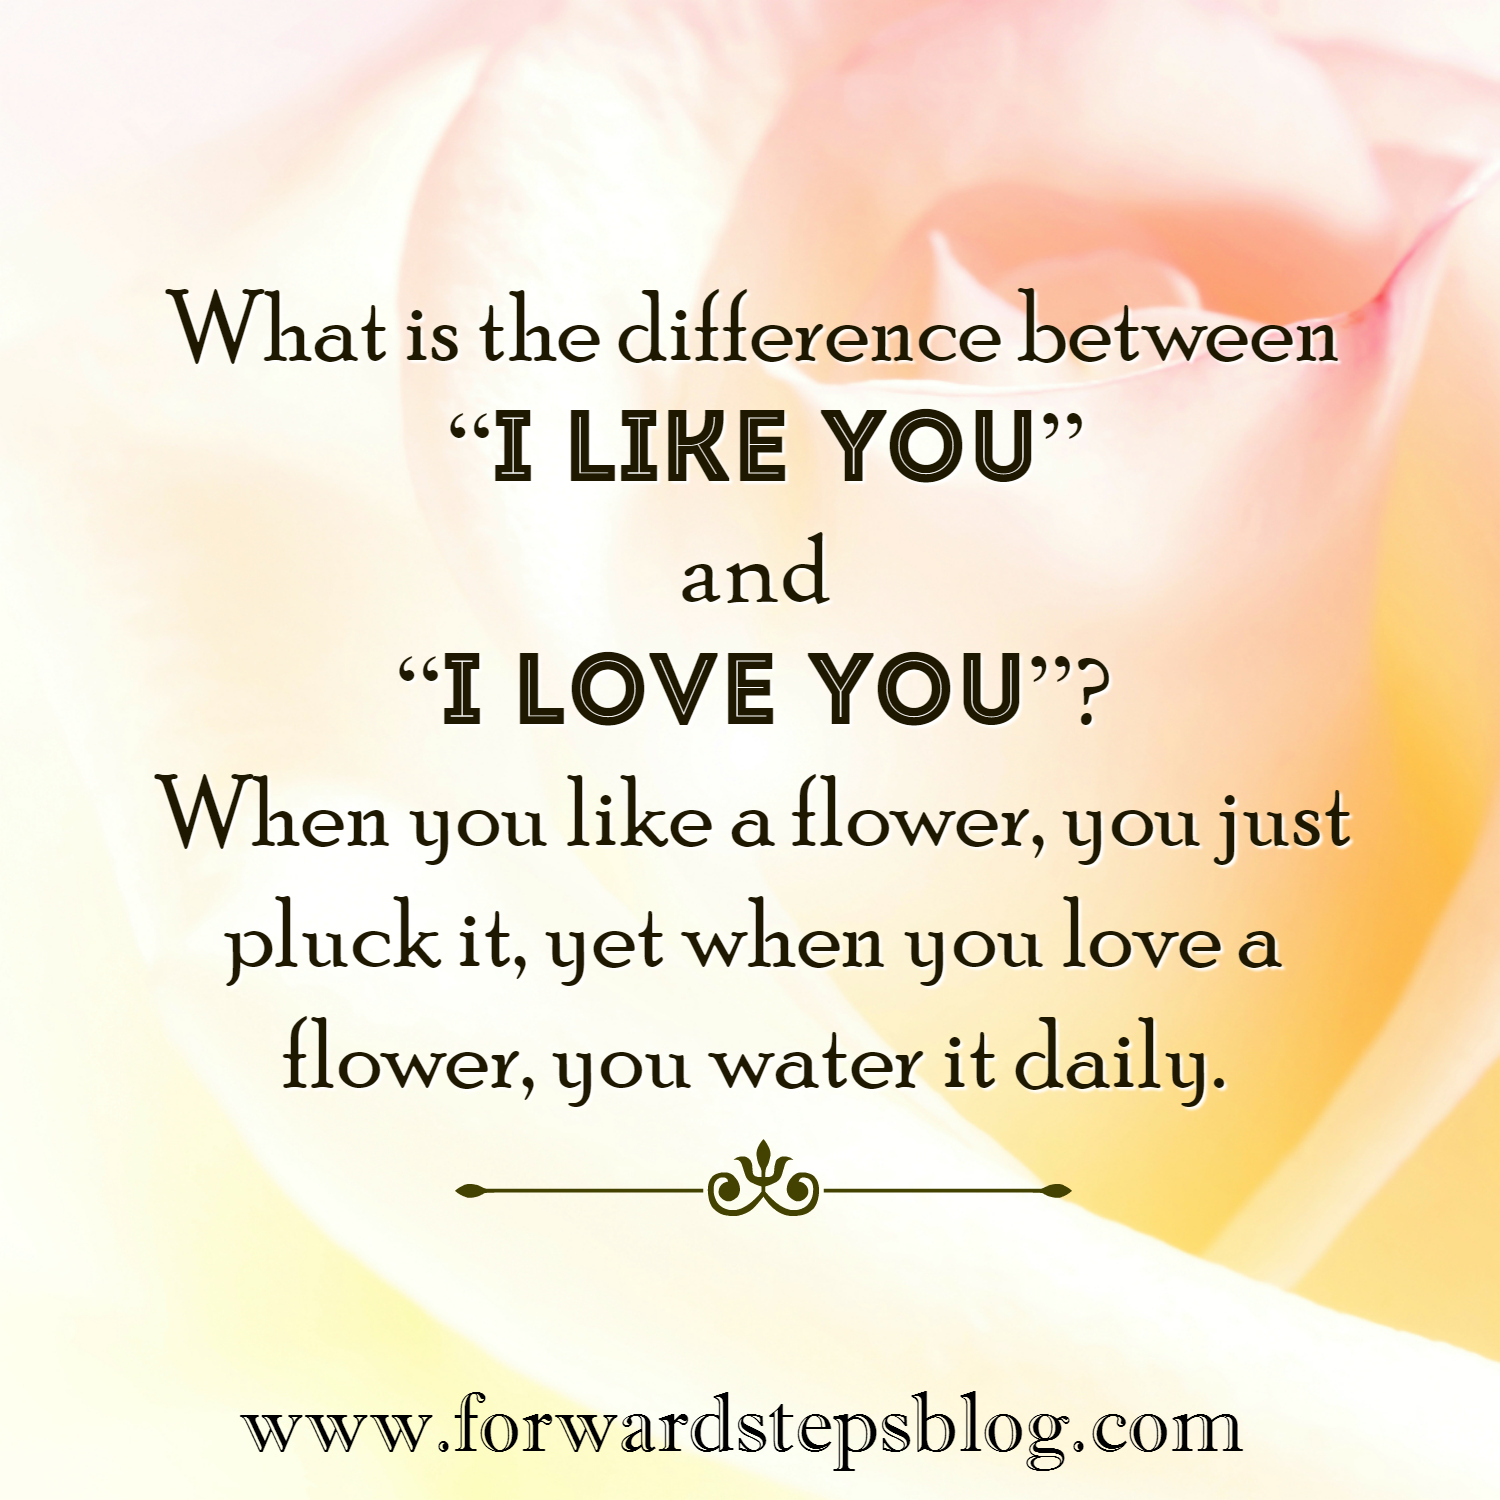 I like you I love you quote image